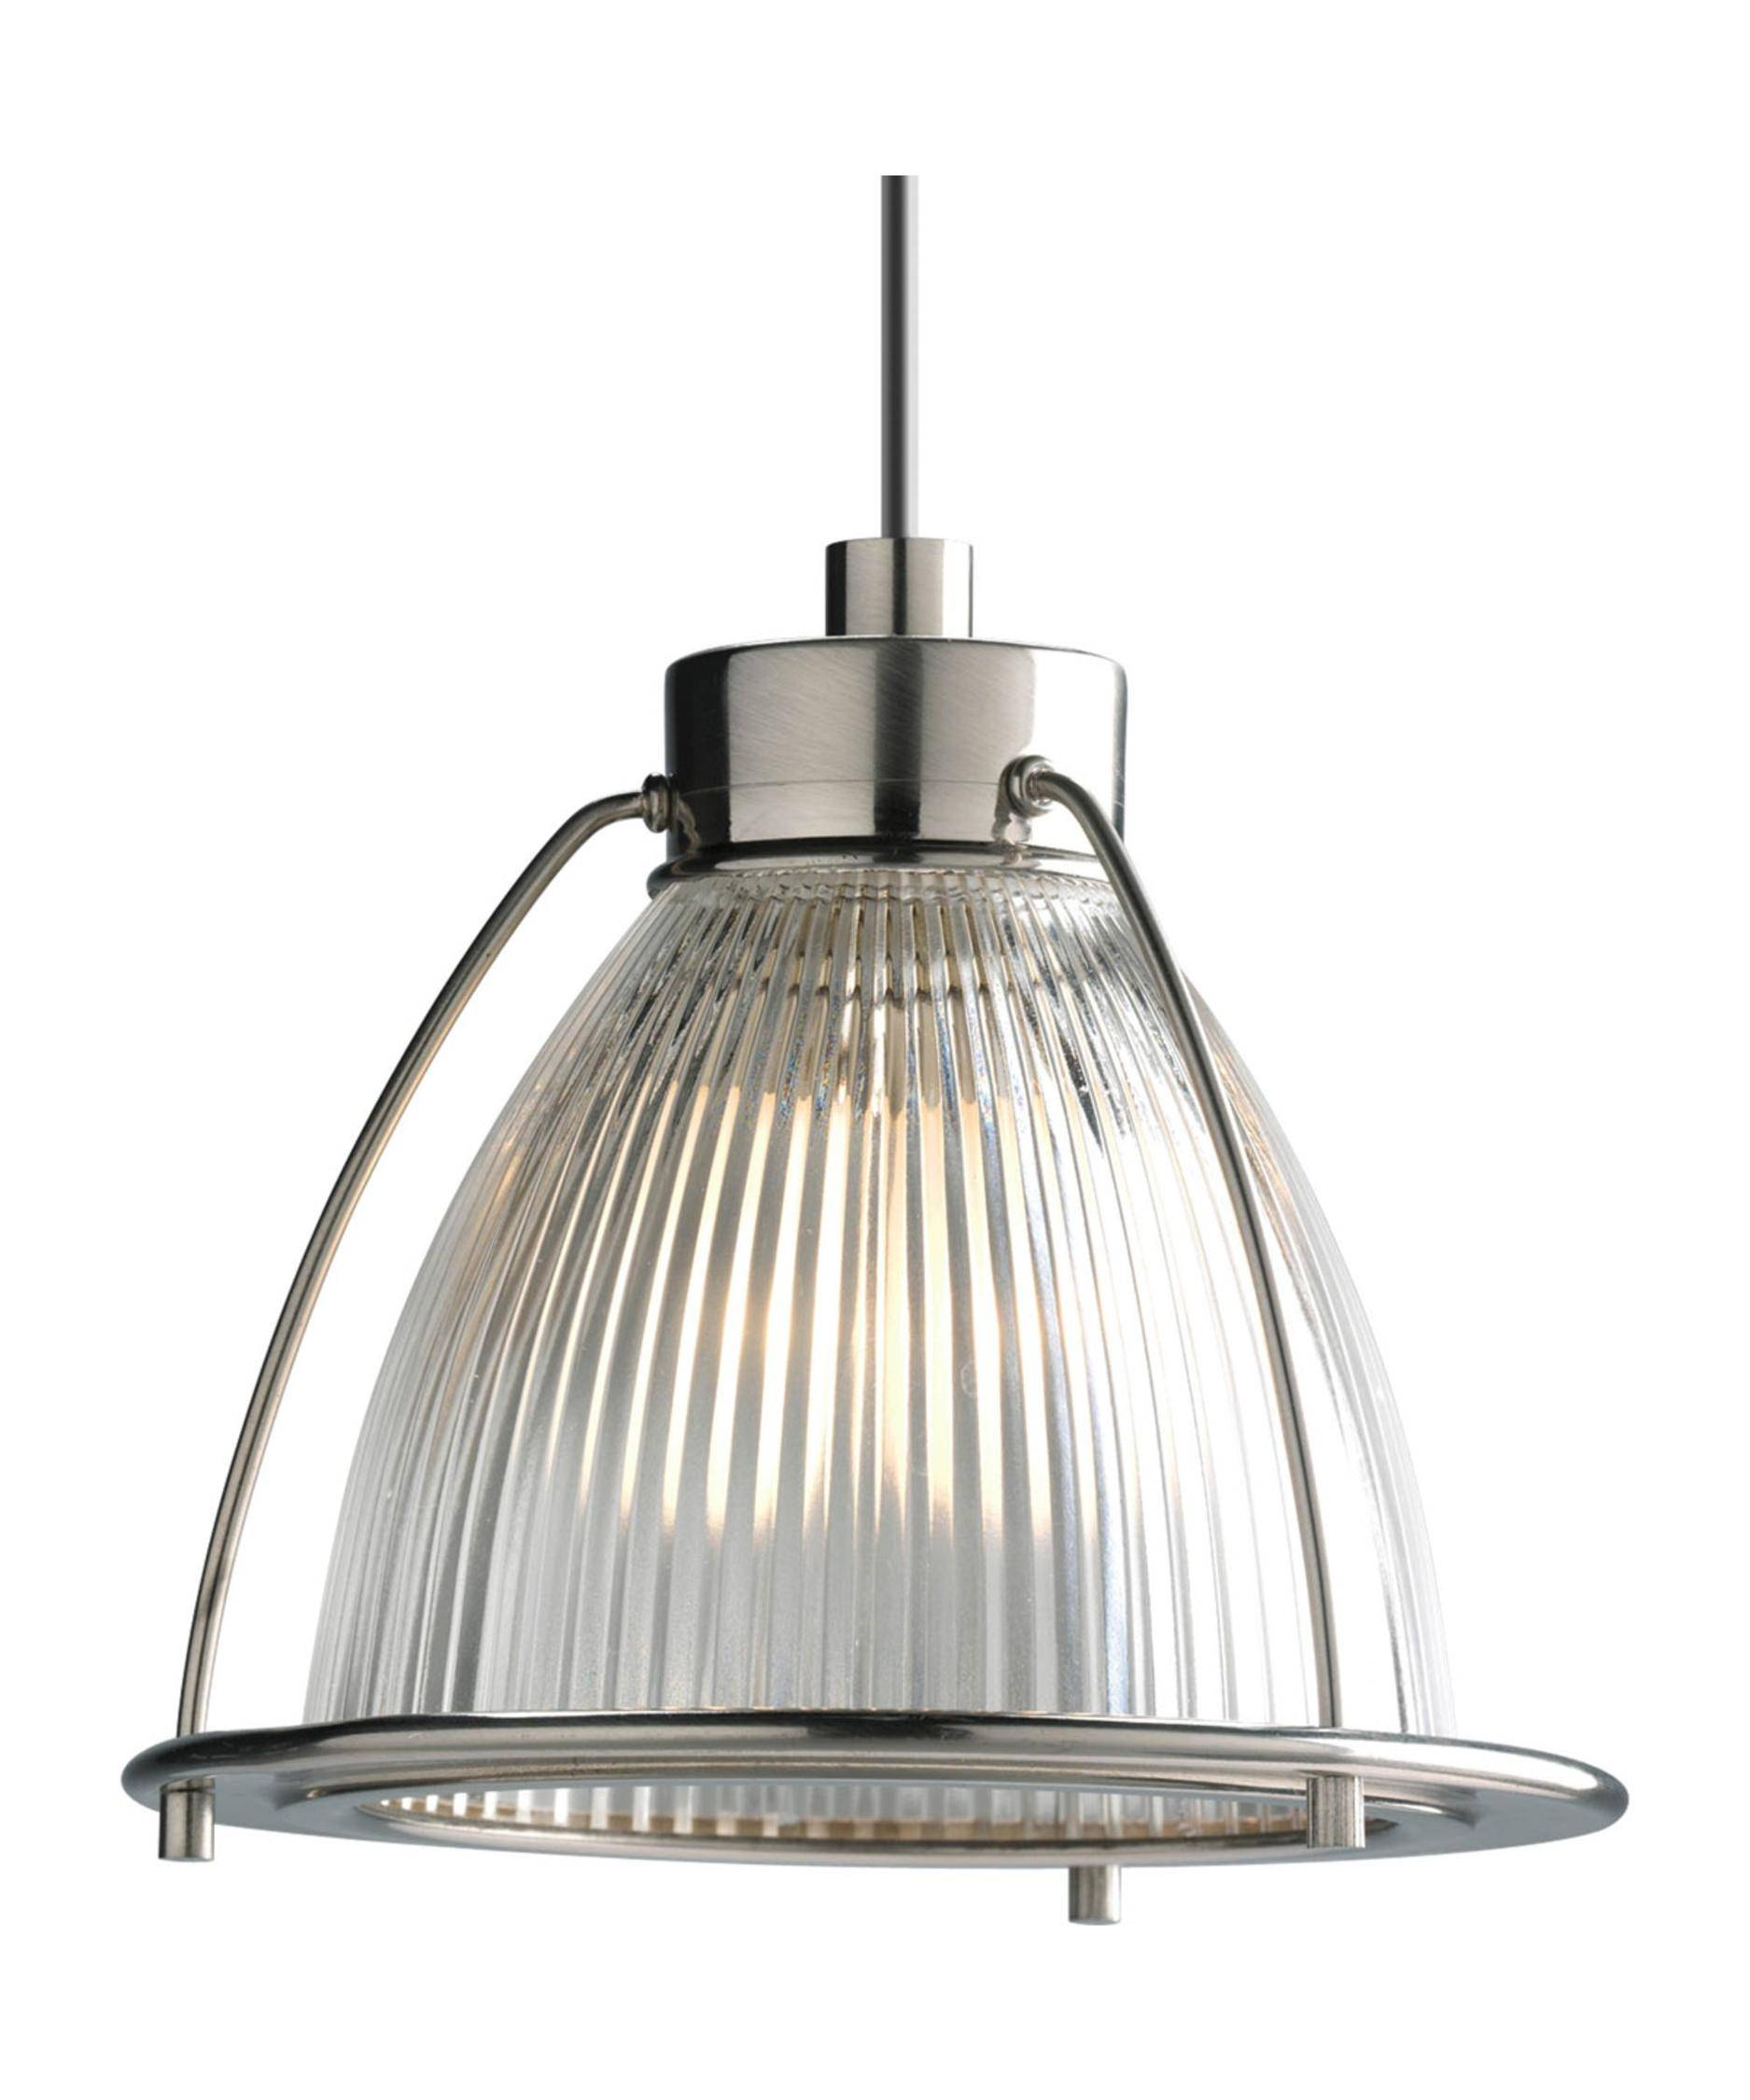 Progress Lighting P6182 Illuma-Flex 6 Inch Wide 1 Light Mini pertaining to Halogen Mini Pendant Lights (Image 13 of 15)